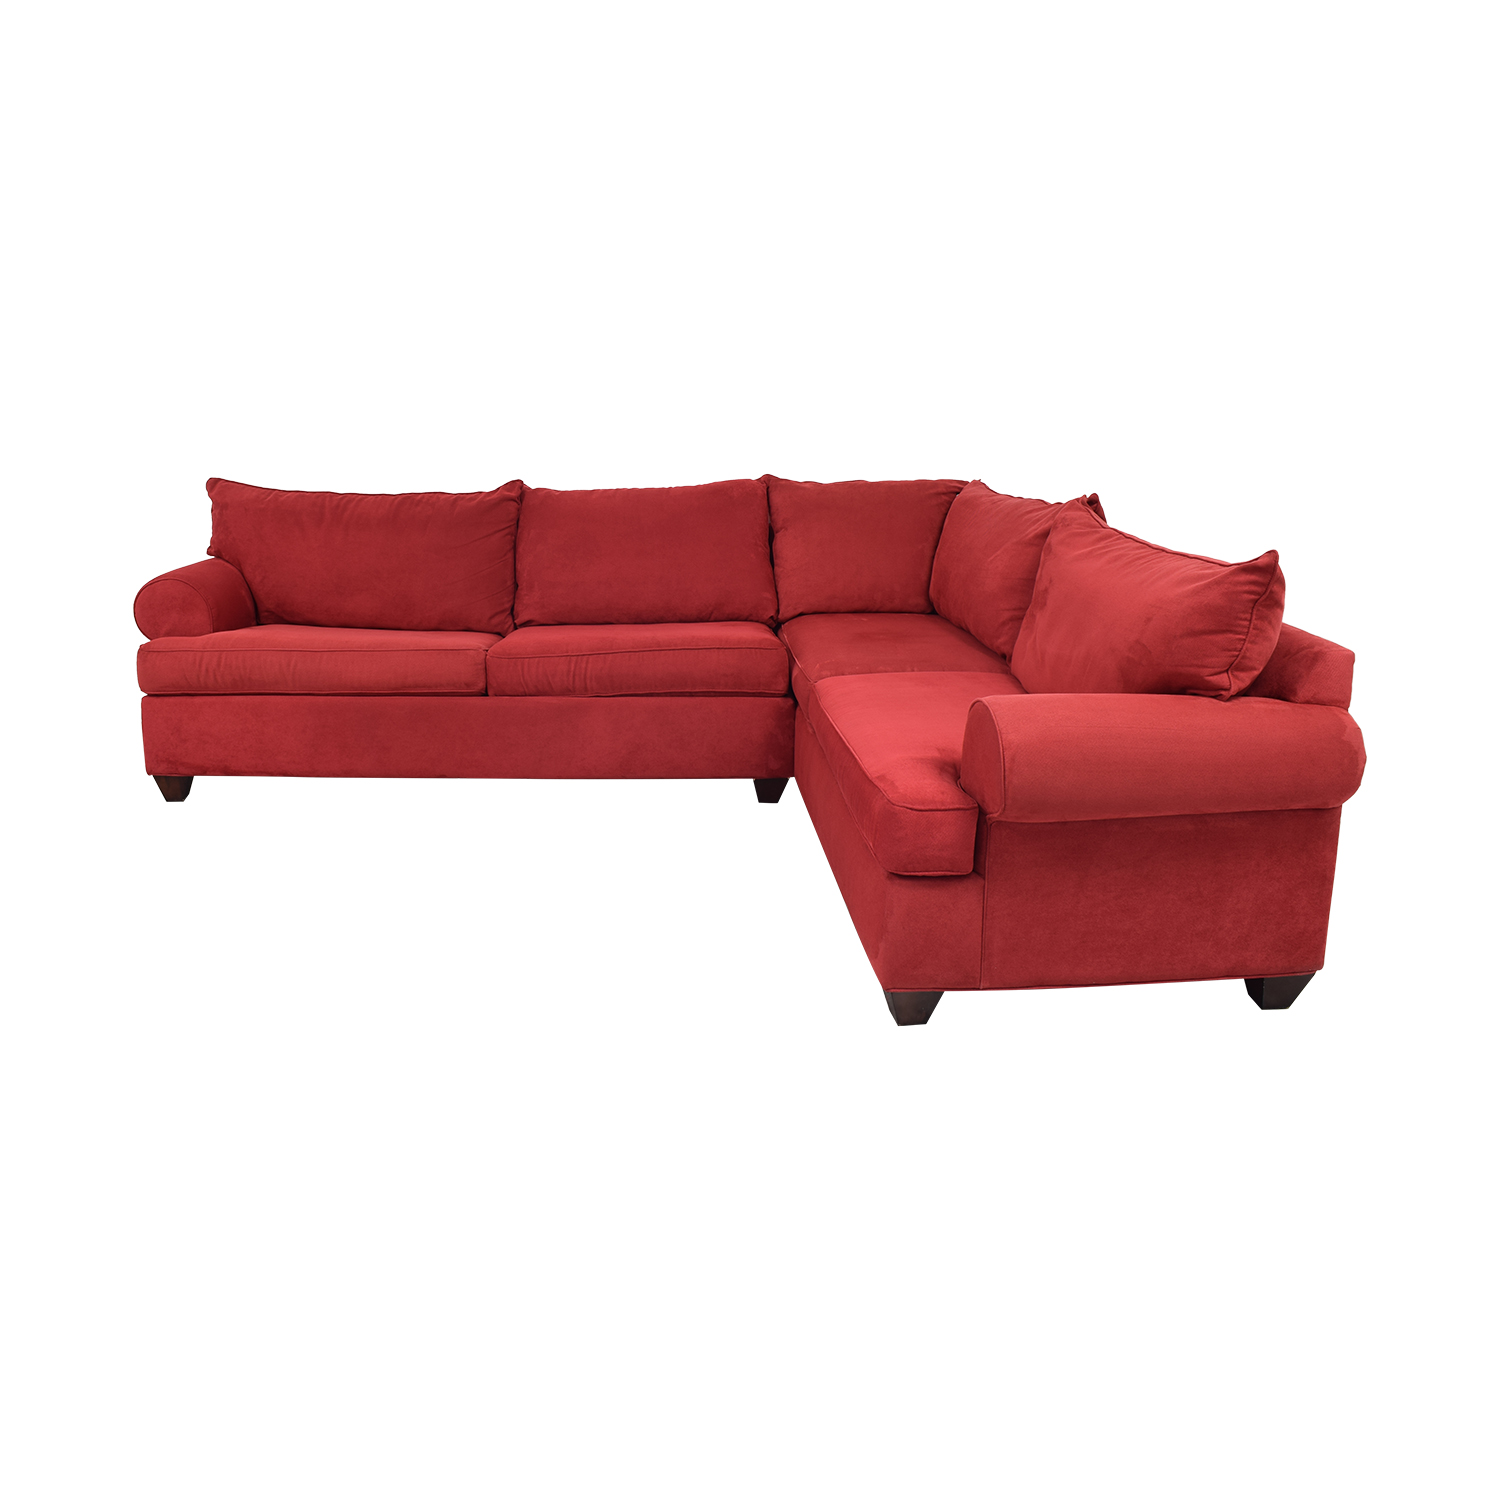 buy Raymour & Flanigan Raymour & Flanigan Sleeper Sectional Sofa online